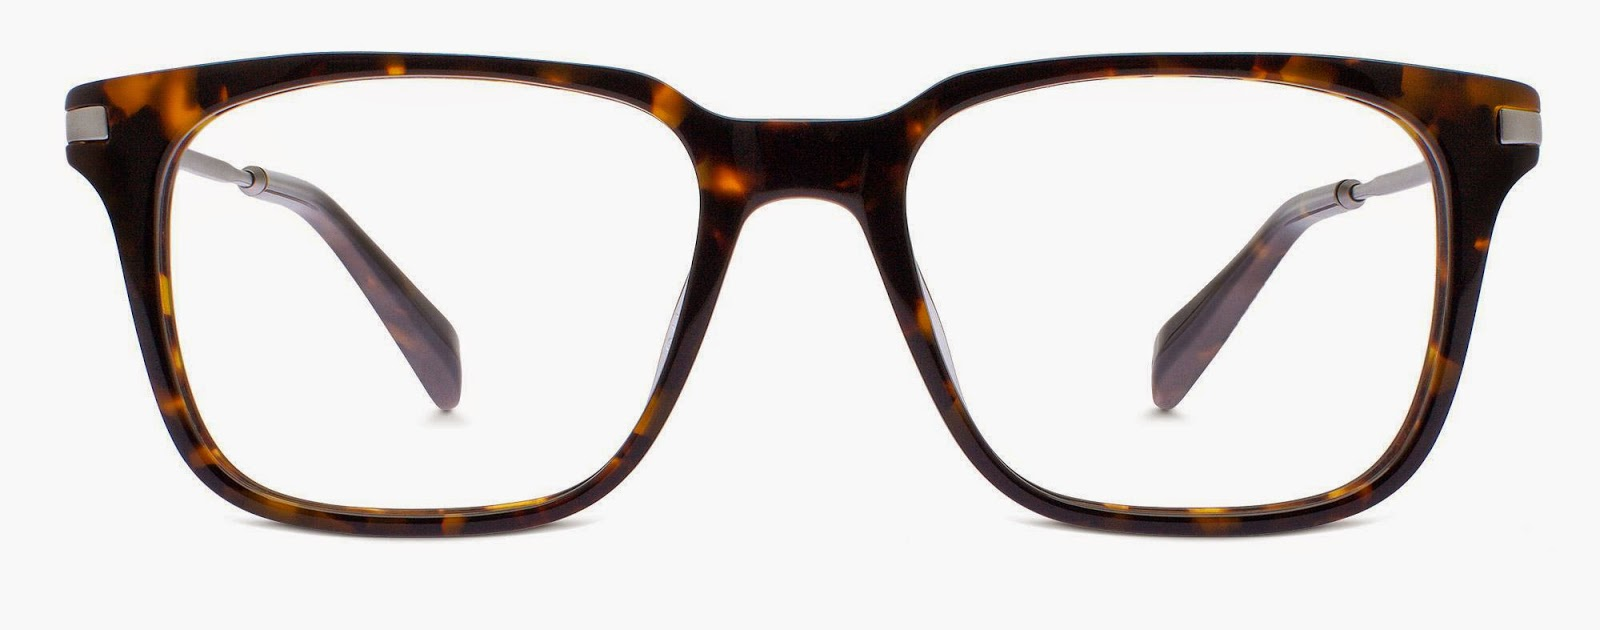 Eyeglass Frames Home Try On : Greatest Blog.tv: Warby Parker (5 Pair - Home Try-On ...